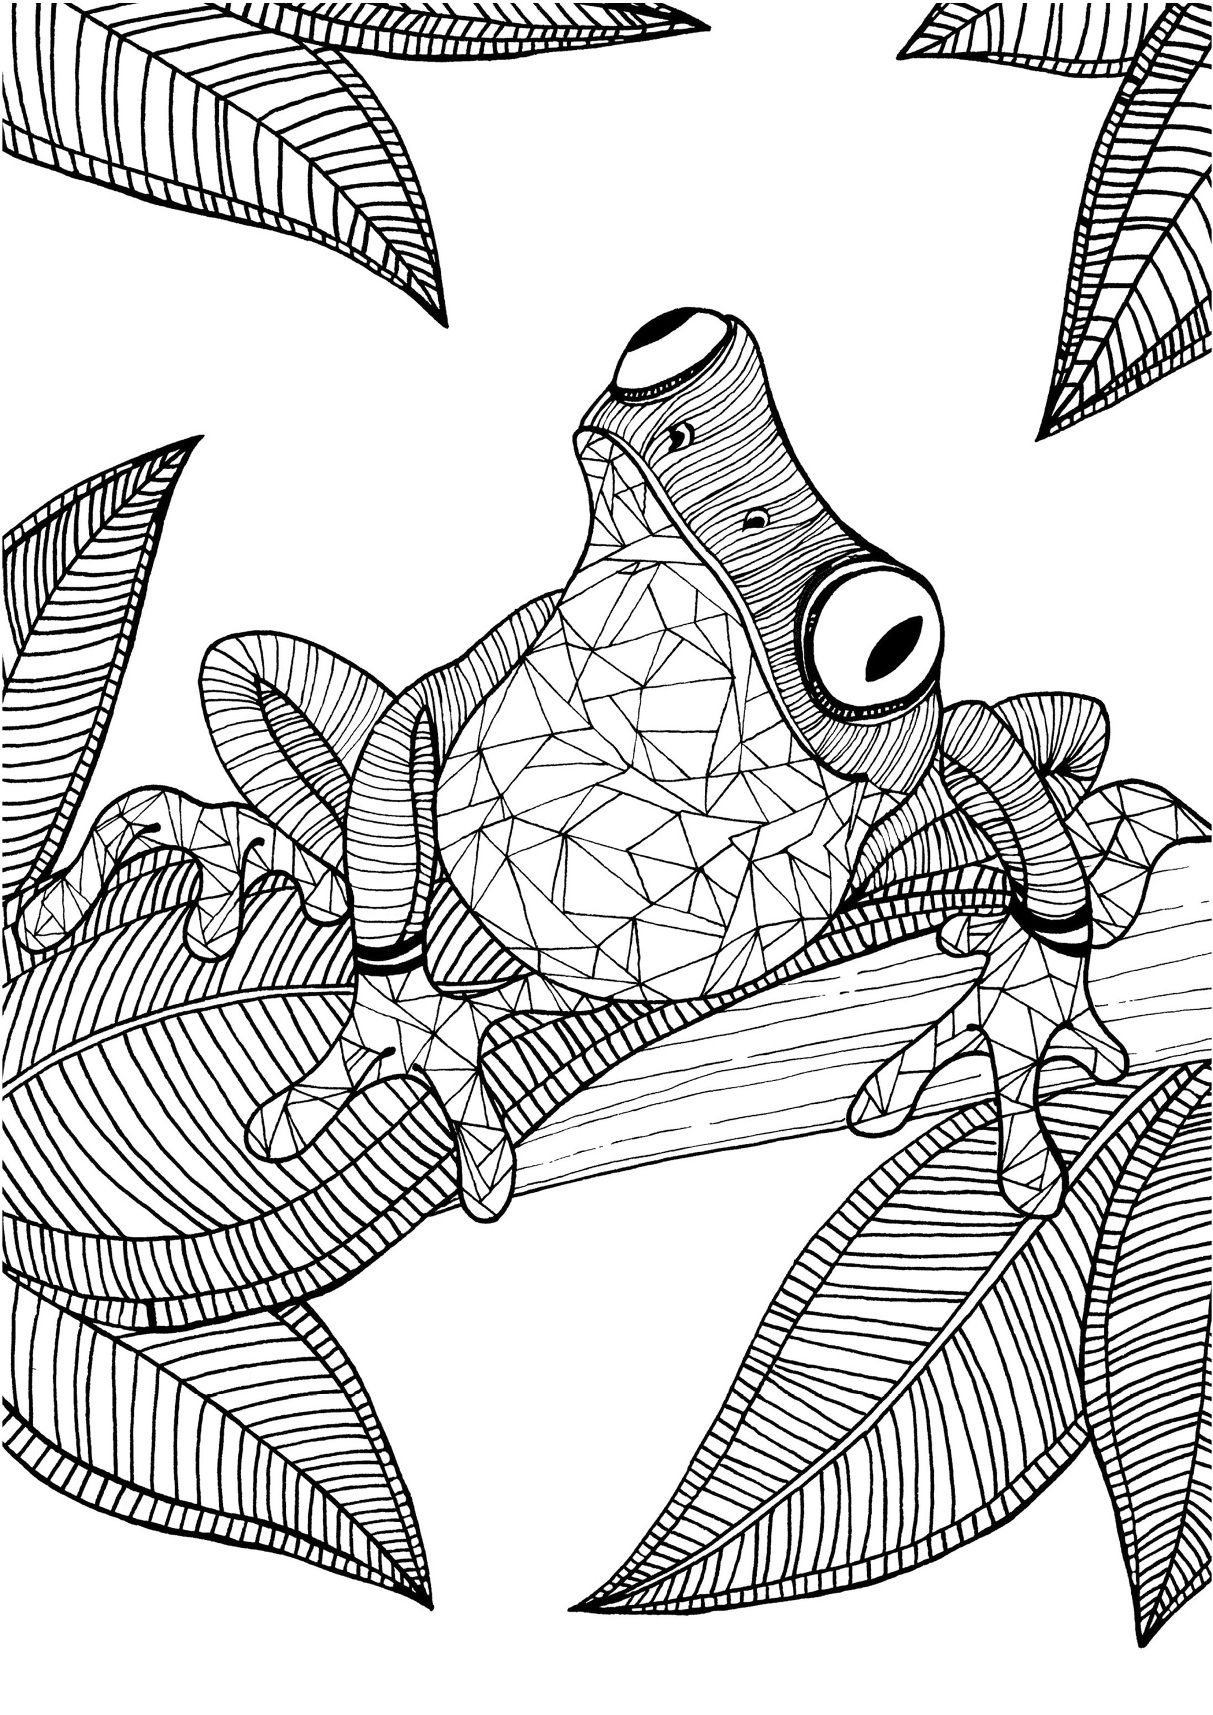 Frog Adult Colouring Page Colouring In Sheets Art Craft